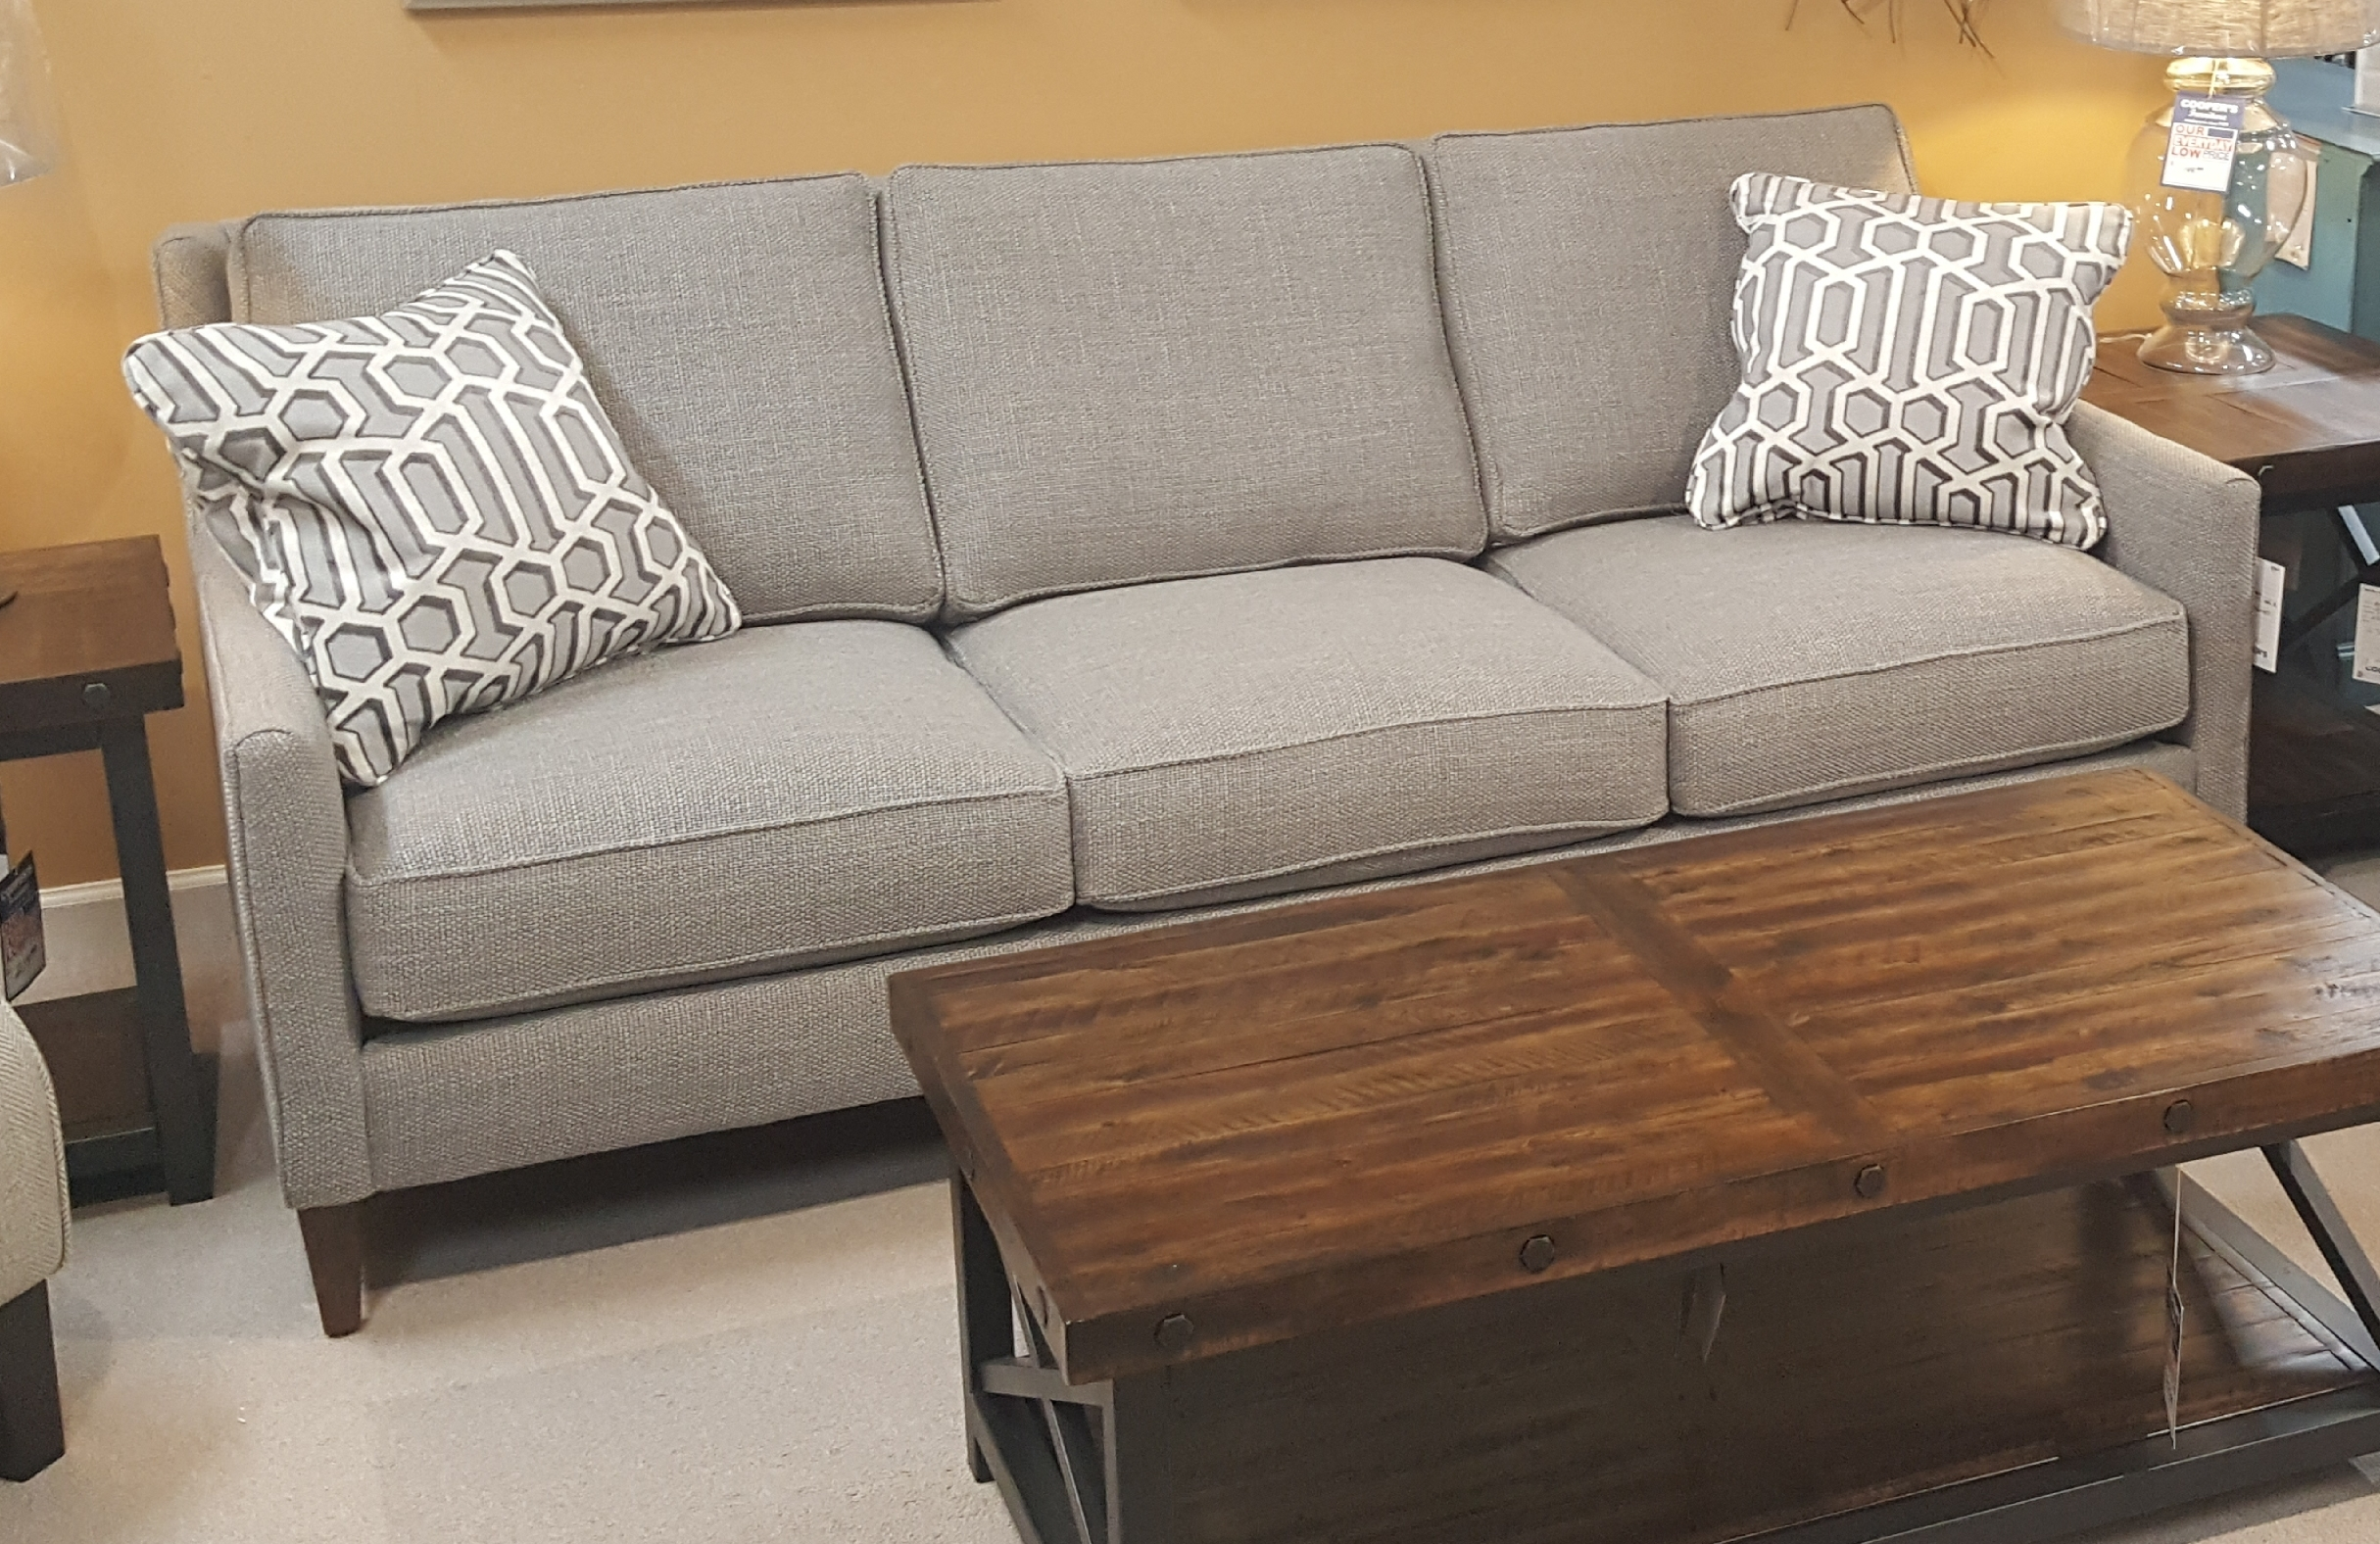 Living Room Furniture Cary Nc | Sofas, Recliners, Sectionals Regarding Durham Region Sectional Sofas (View 7 of 10)